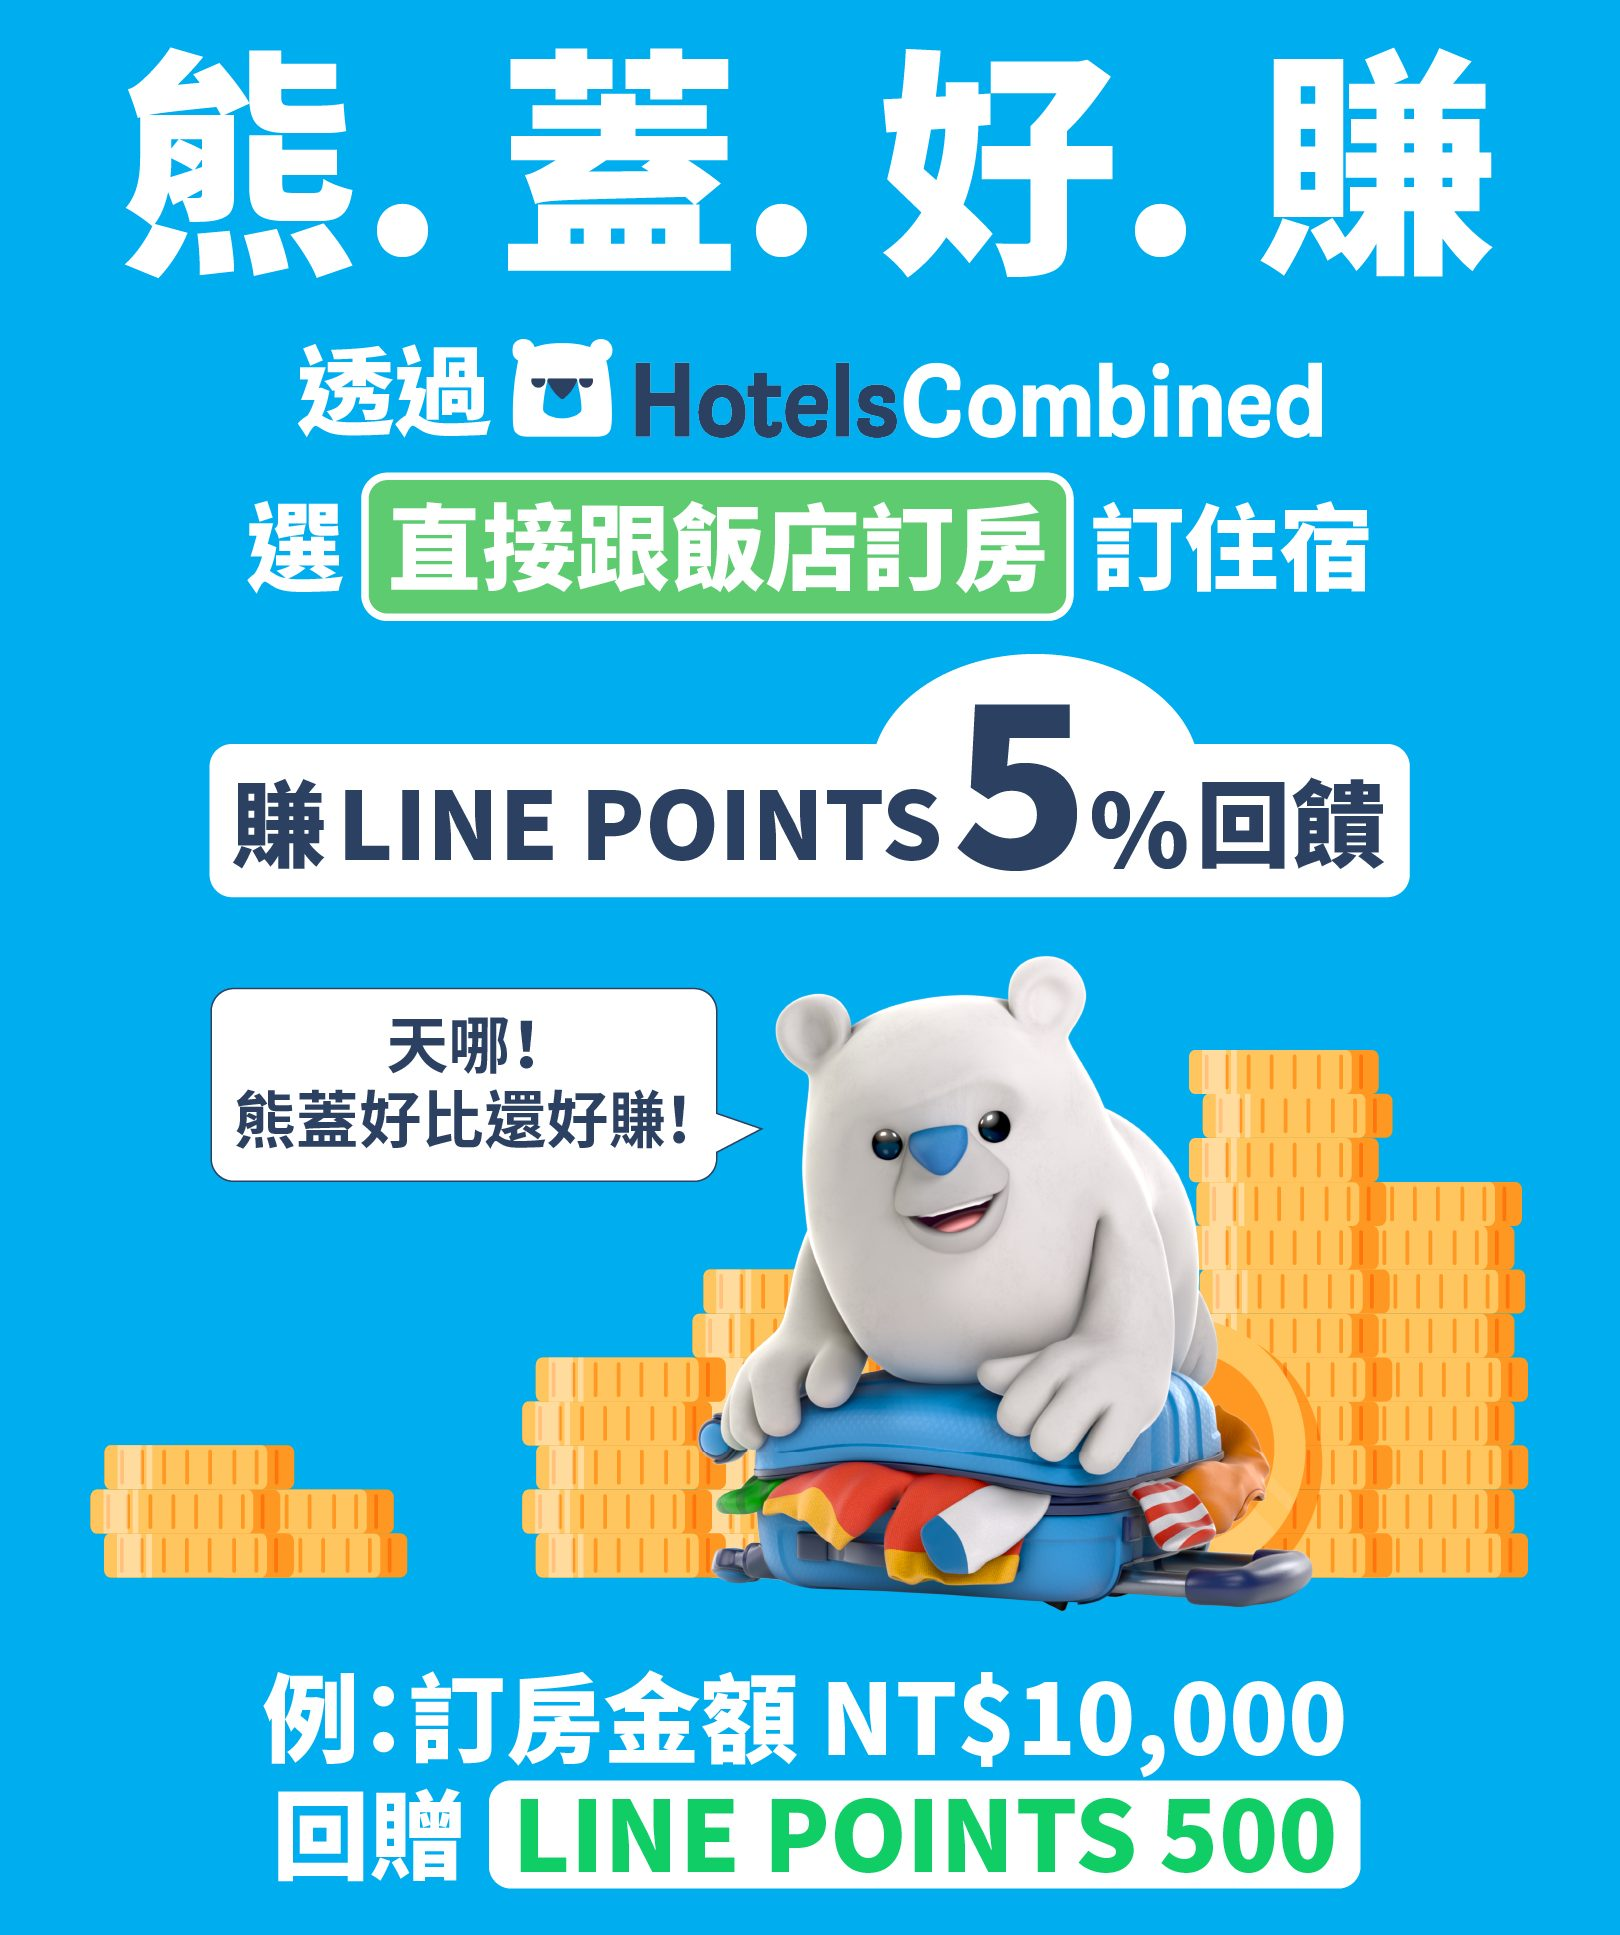 HotelsCombined LINE POINTS回饋活動